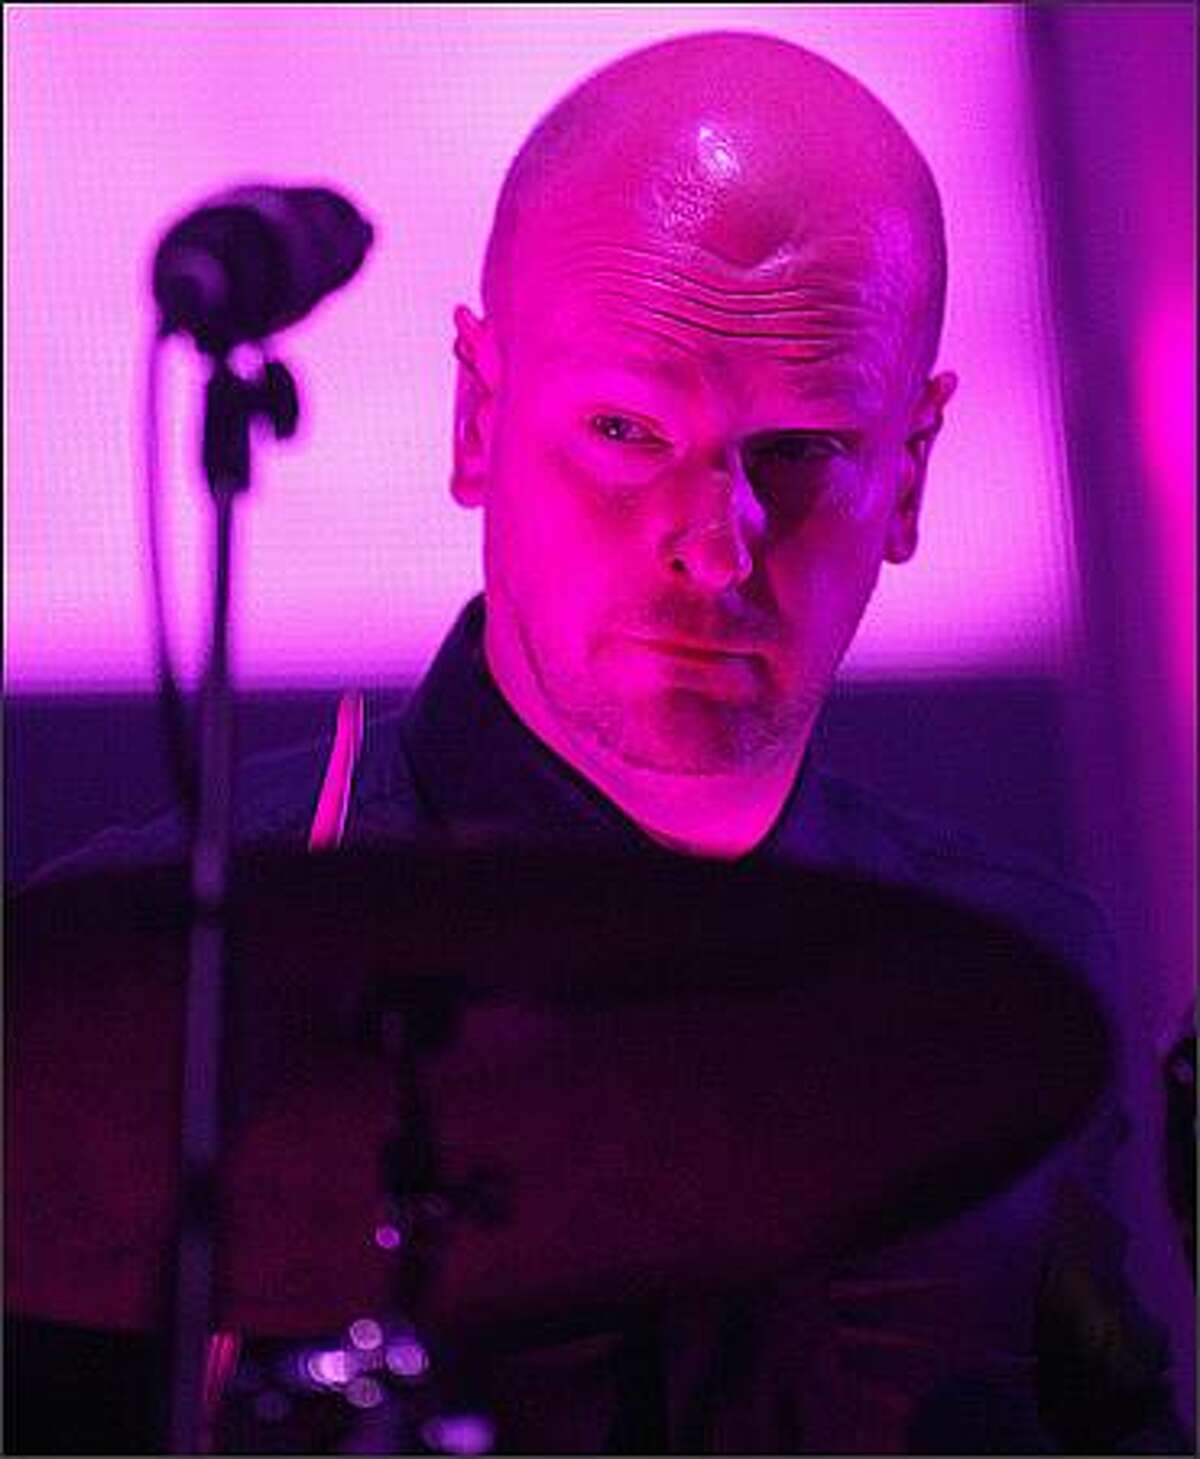 Radiohead drummer Phil Selway in concert at White River Amphitheatre.